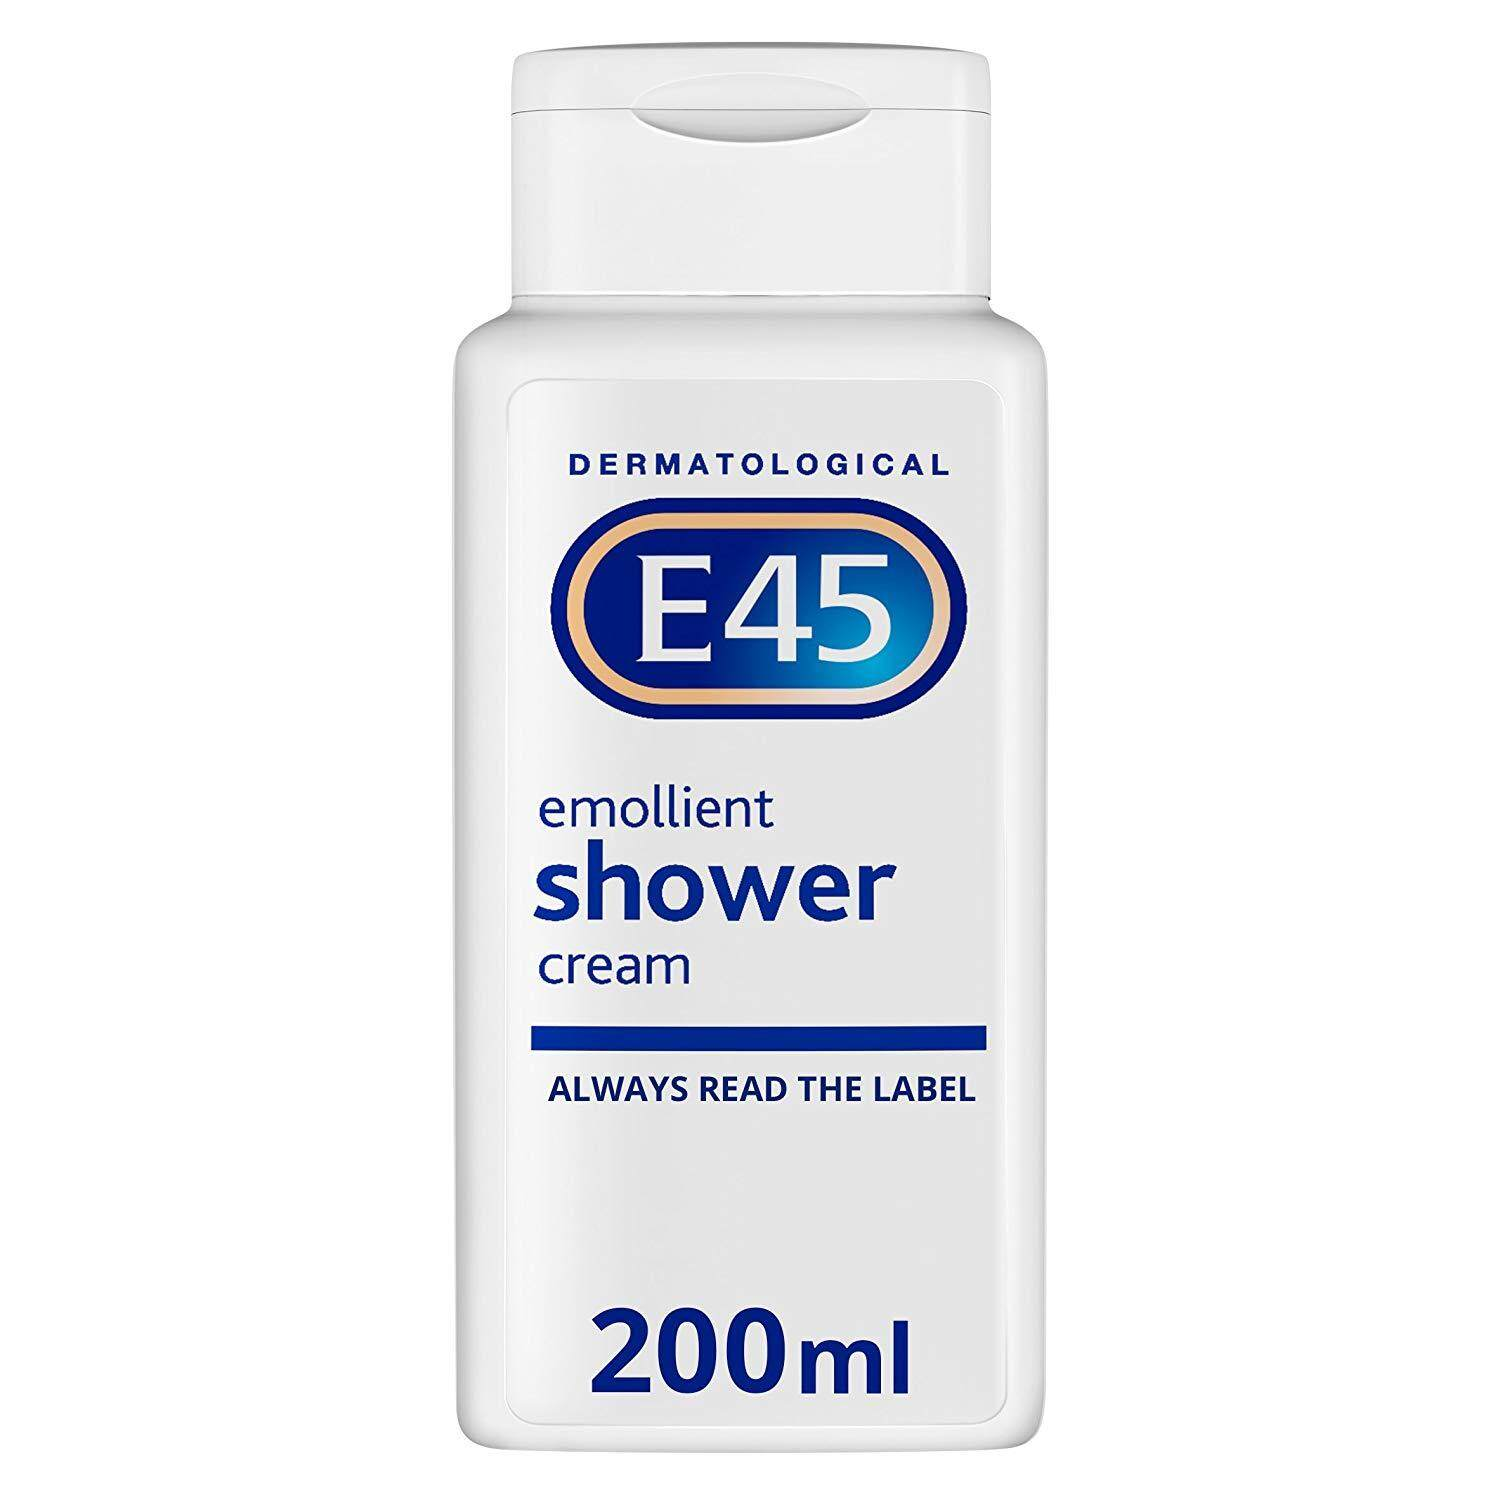 E45 Dermatological Emollient Shower Cream 200 ml